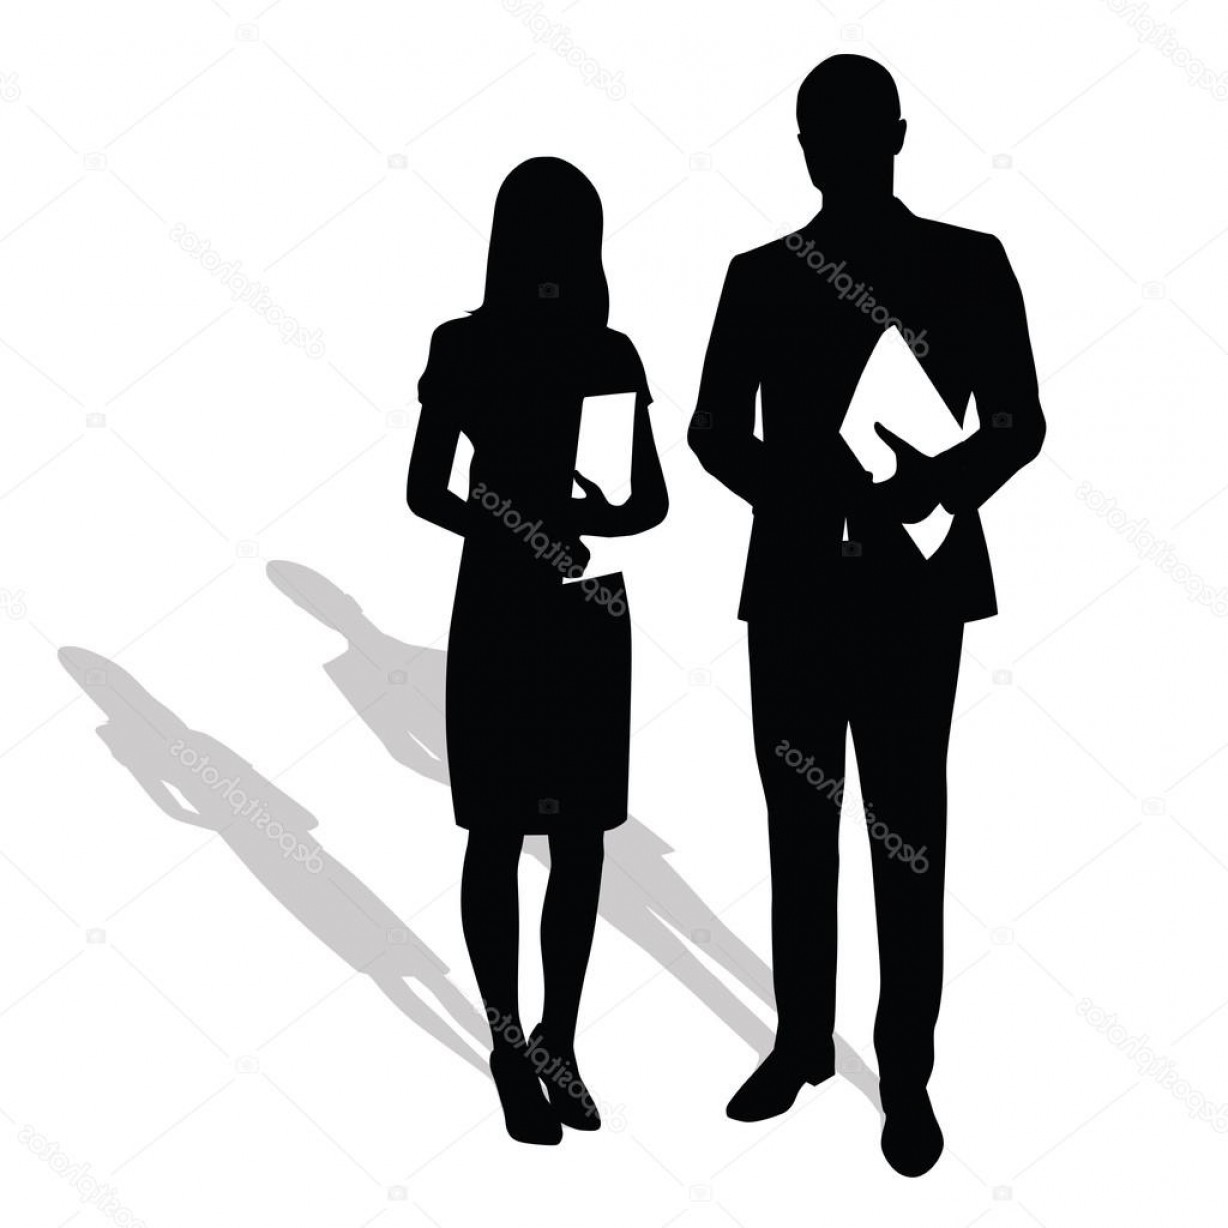 Silhouette Hee High Vector Lsitleetios: Stock Illustration Business People Holding Papers Documents